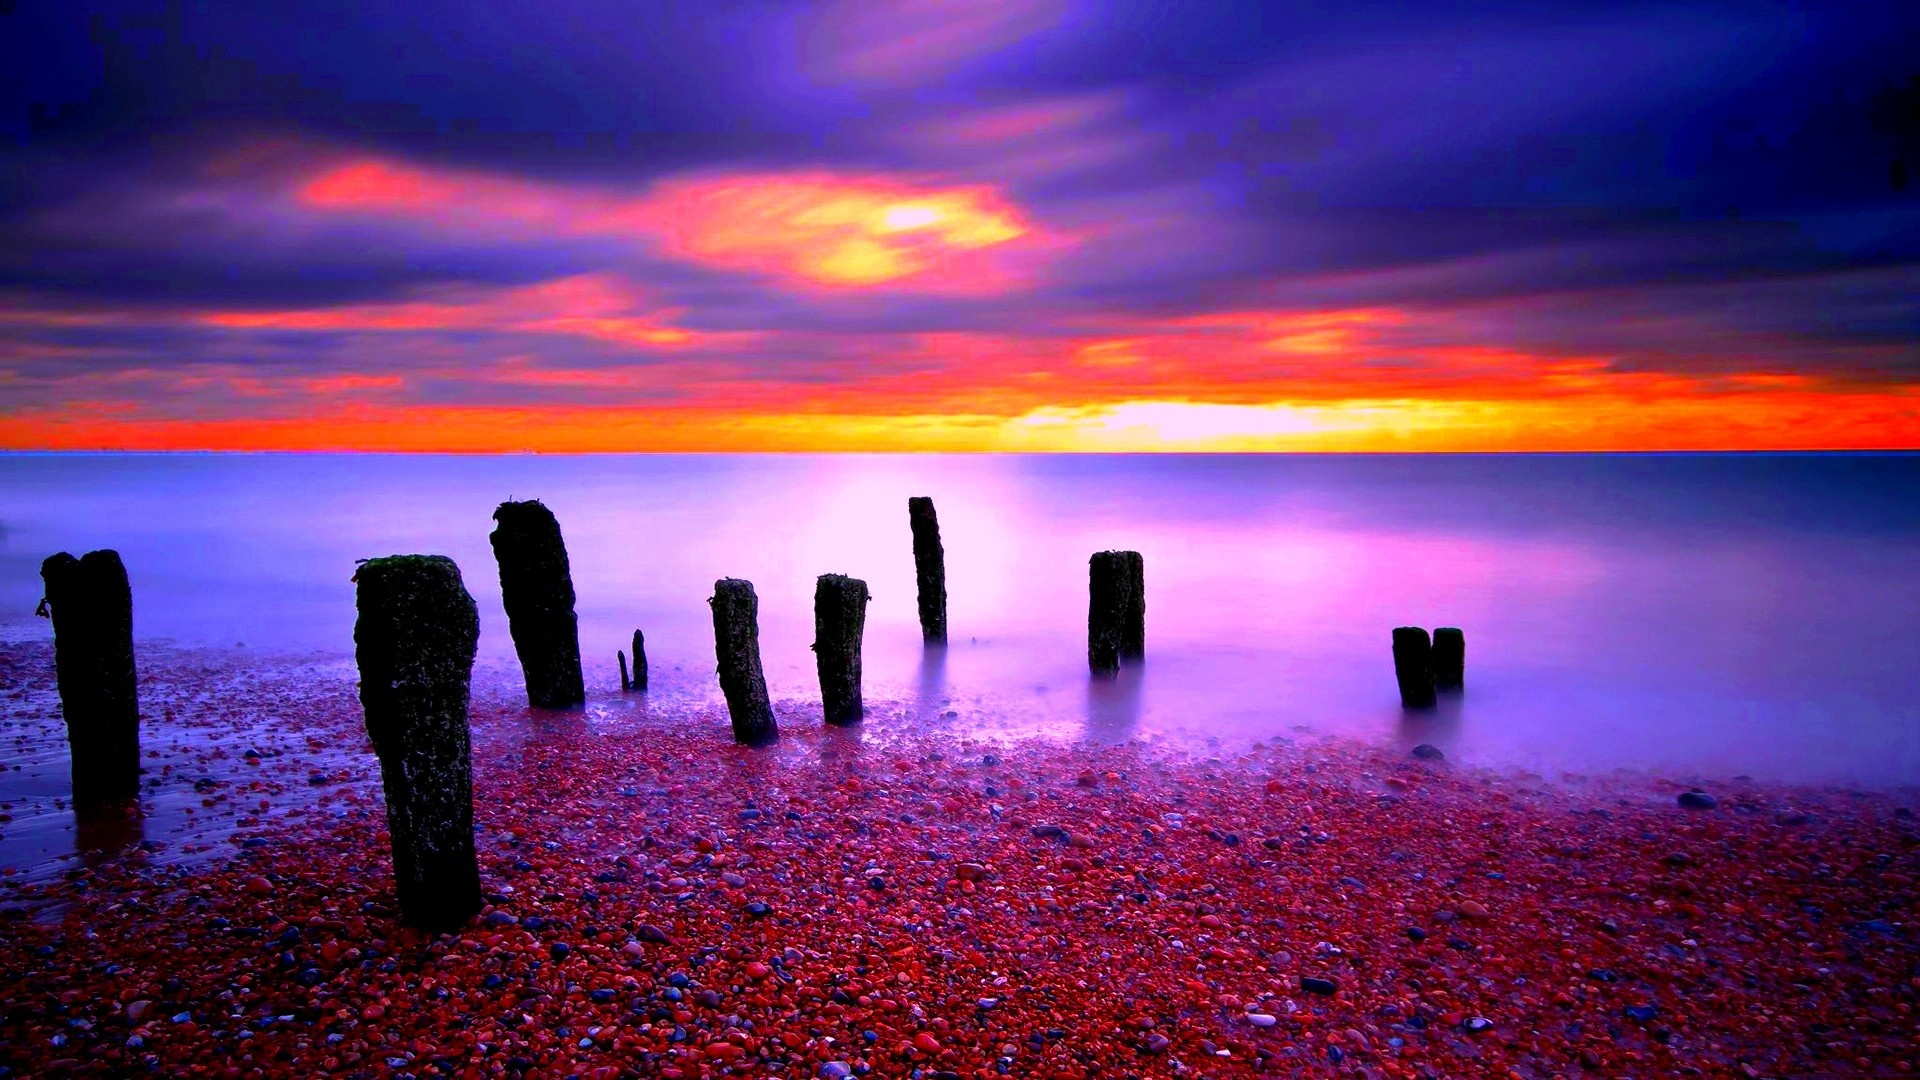 Download colorful sunset wallpaper gallery - High definition colorful wallpapers ...